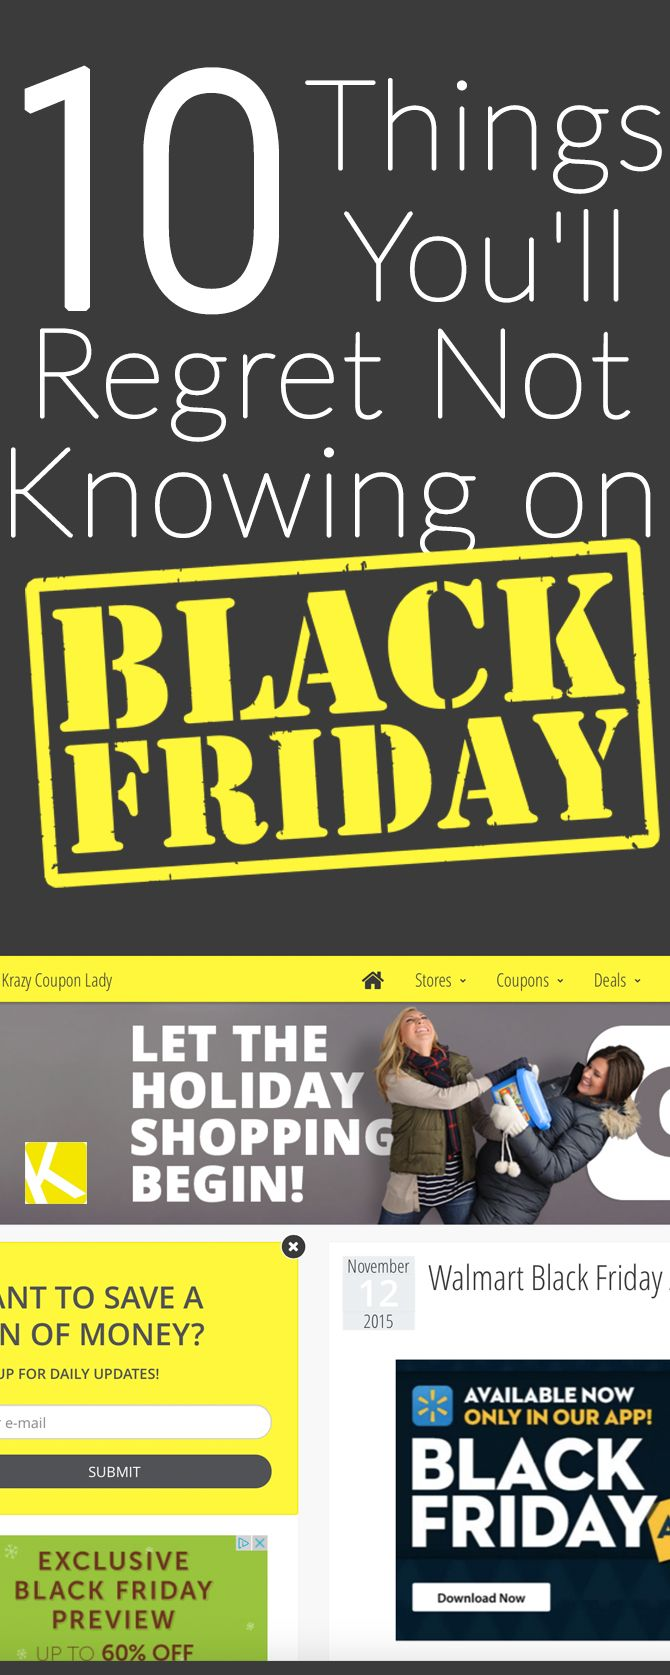 Looks - Friday Shoppingblack cyber monday promotions video